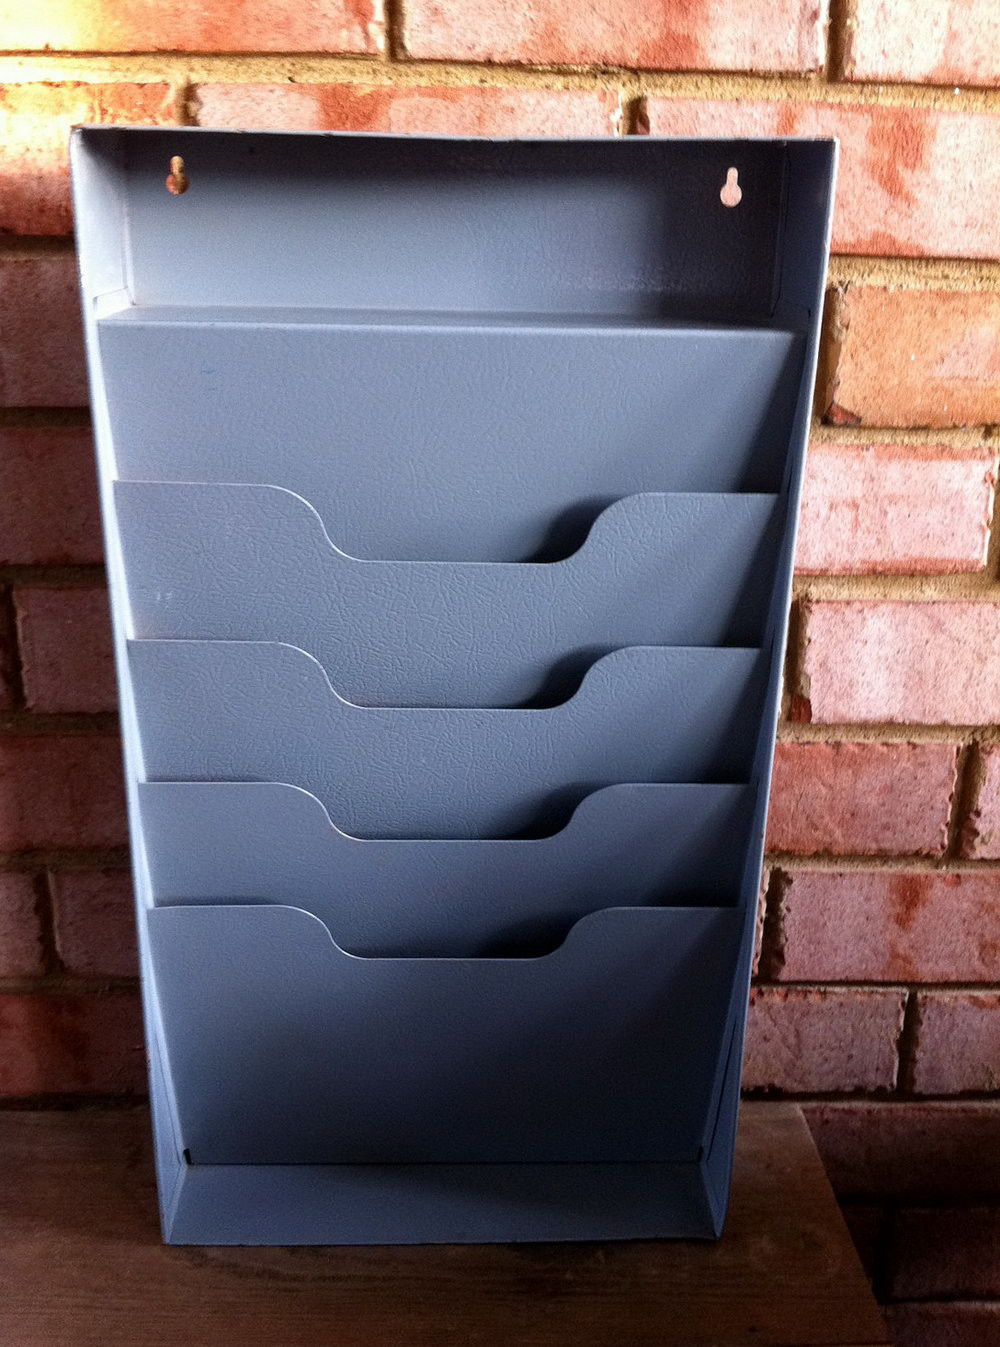 Best ideas about DIY Wall File Organizer . Save or Pin Wall File Organizer Diy Diy Do It Your Self Now.